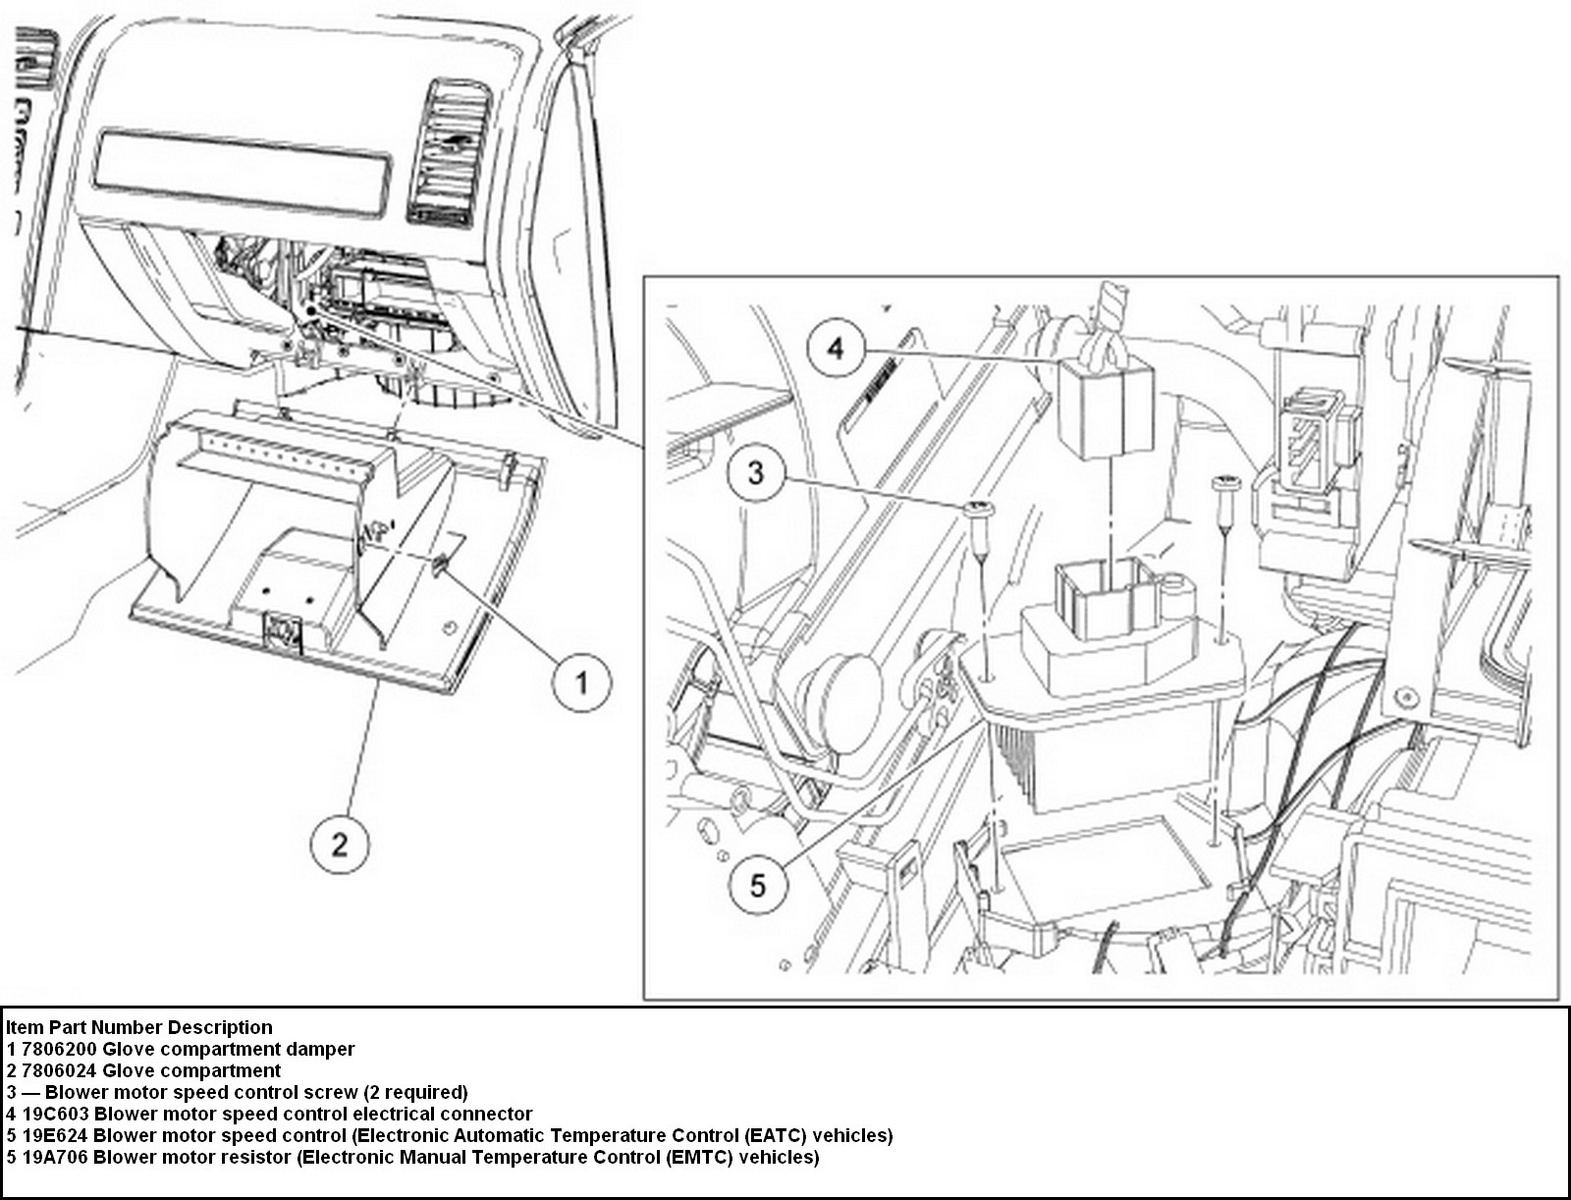 93 Mustang 5 0 Engine Diagram likewise ment 15266 besides 2007 Toyota Camry Engine  partment Fuse Diagram besides Dodge Dakota 3 7 Engine Diagram in addition Discussion T24957 ds624347. on 2009 jeep grand cherokee radio wiring diagram